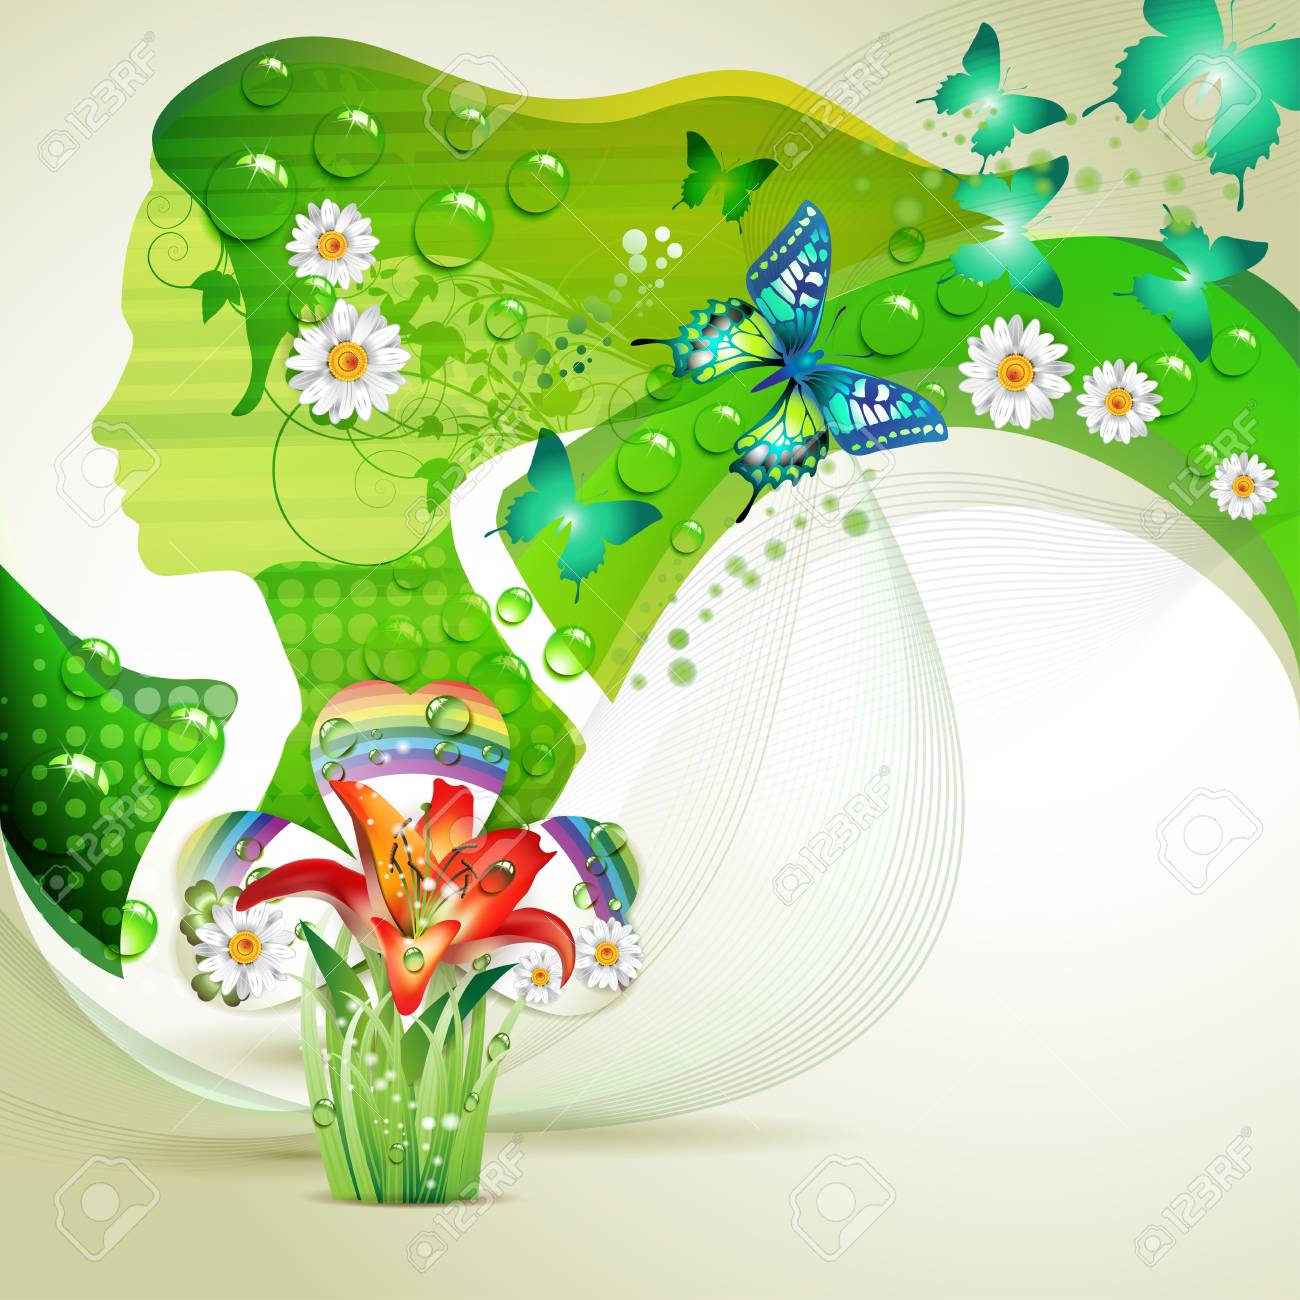 Stylized green portrait with butterflies and flowers Stock Vector - 9932623